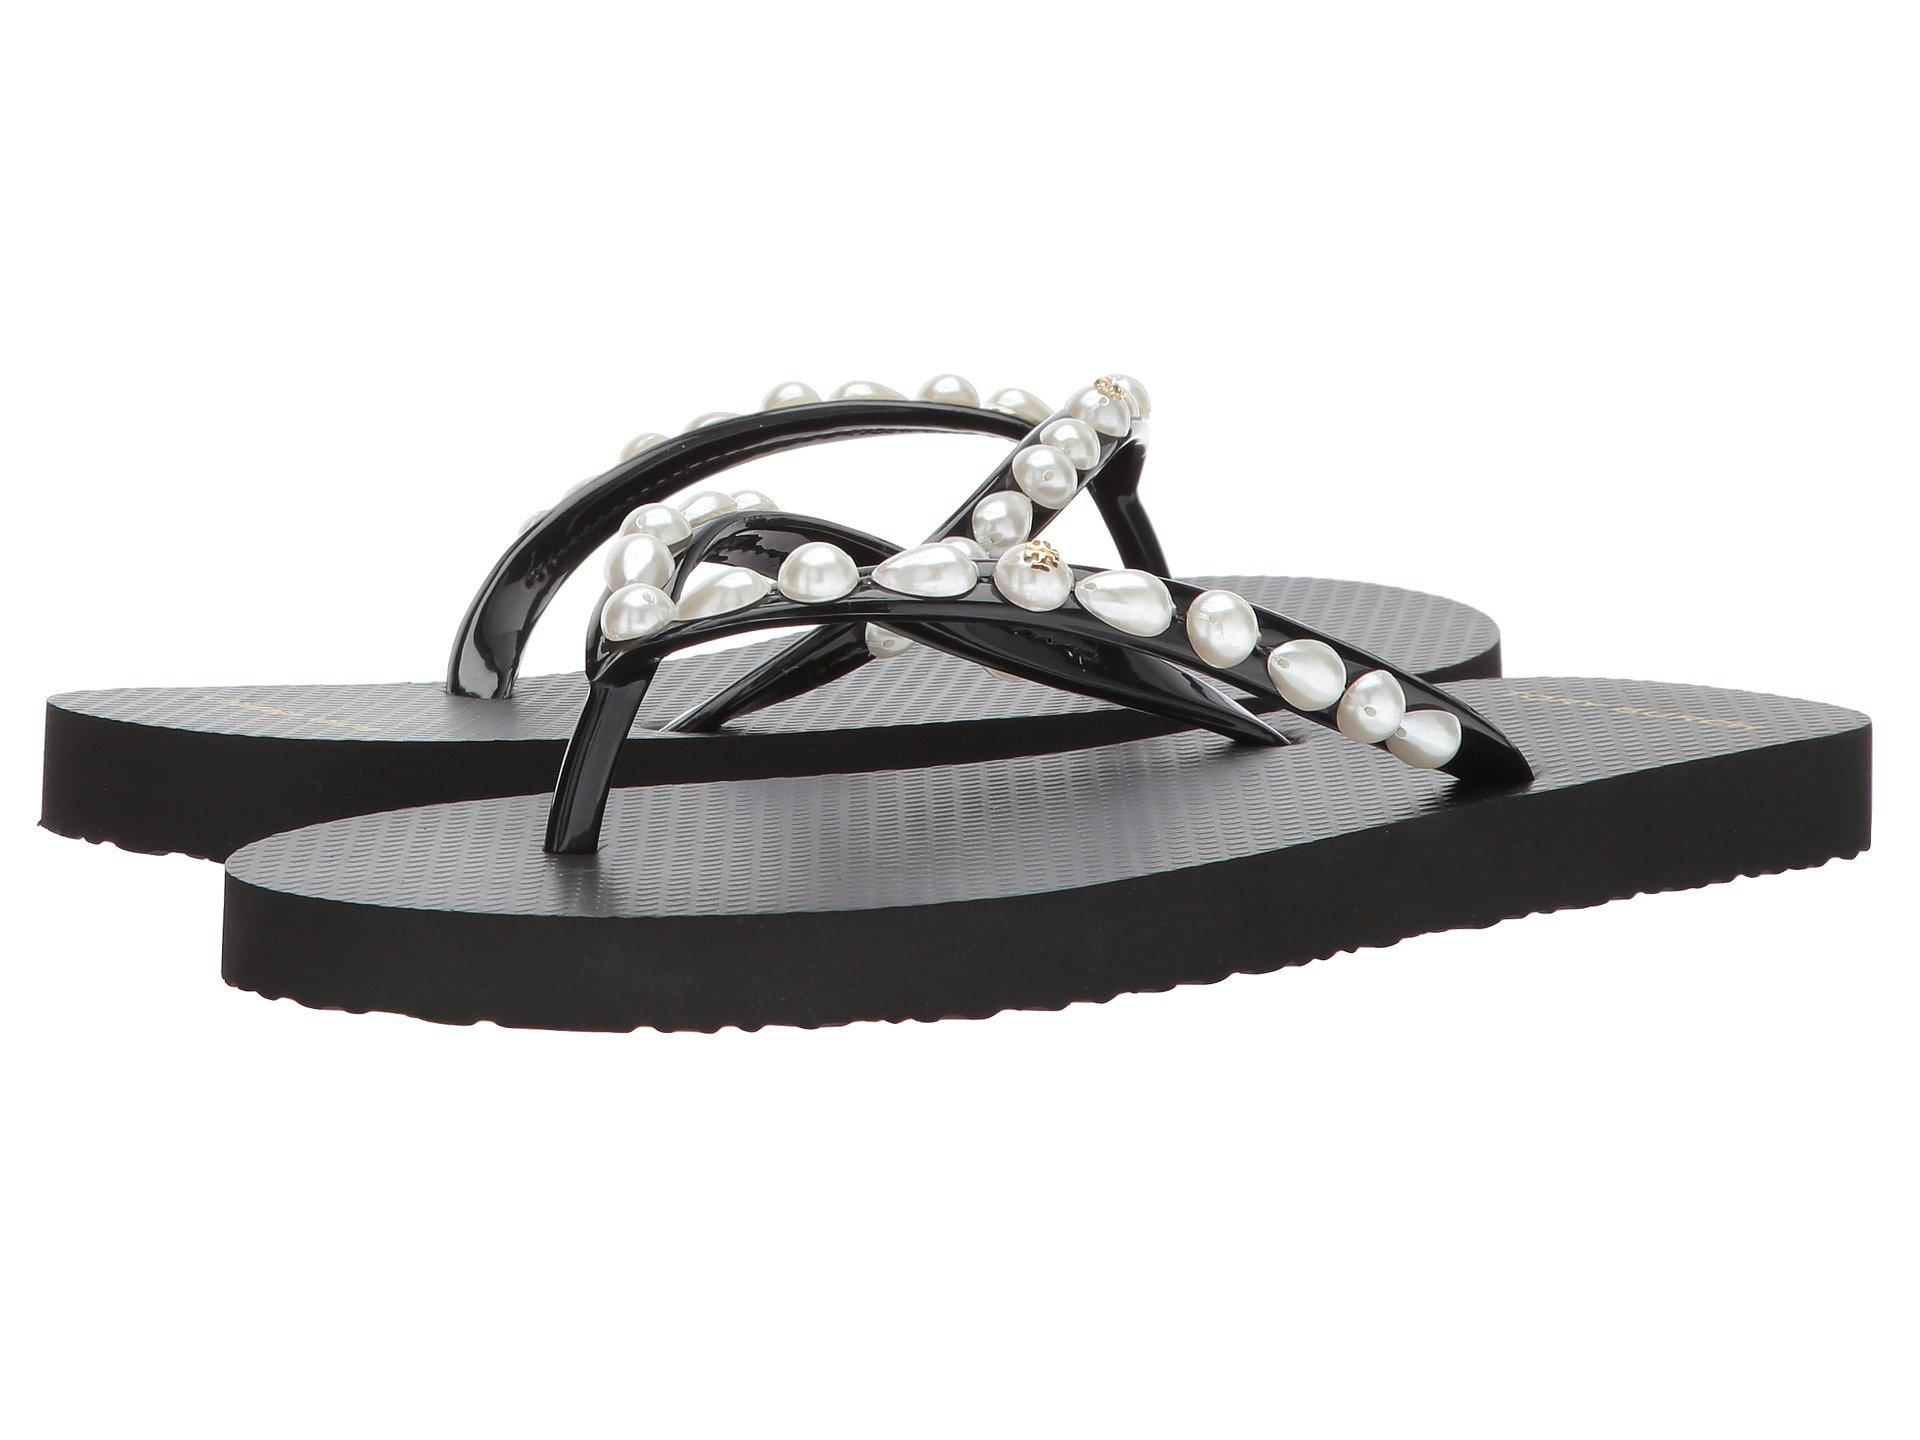 732812bde3ba Lyst - Tory Burch Thin Flip Flop (new Ivory ivory Wild Pansy ...